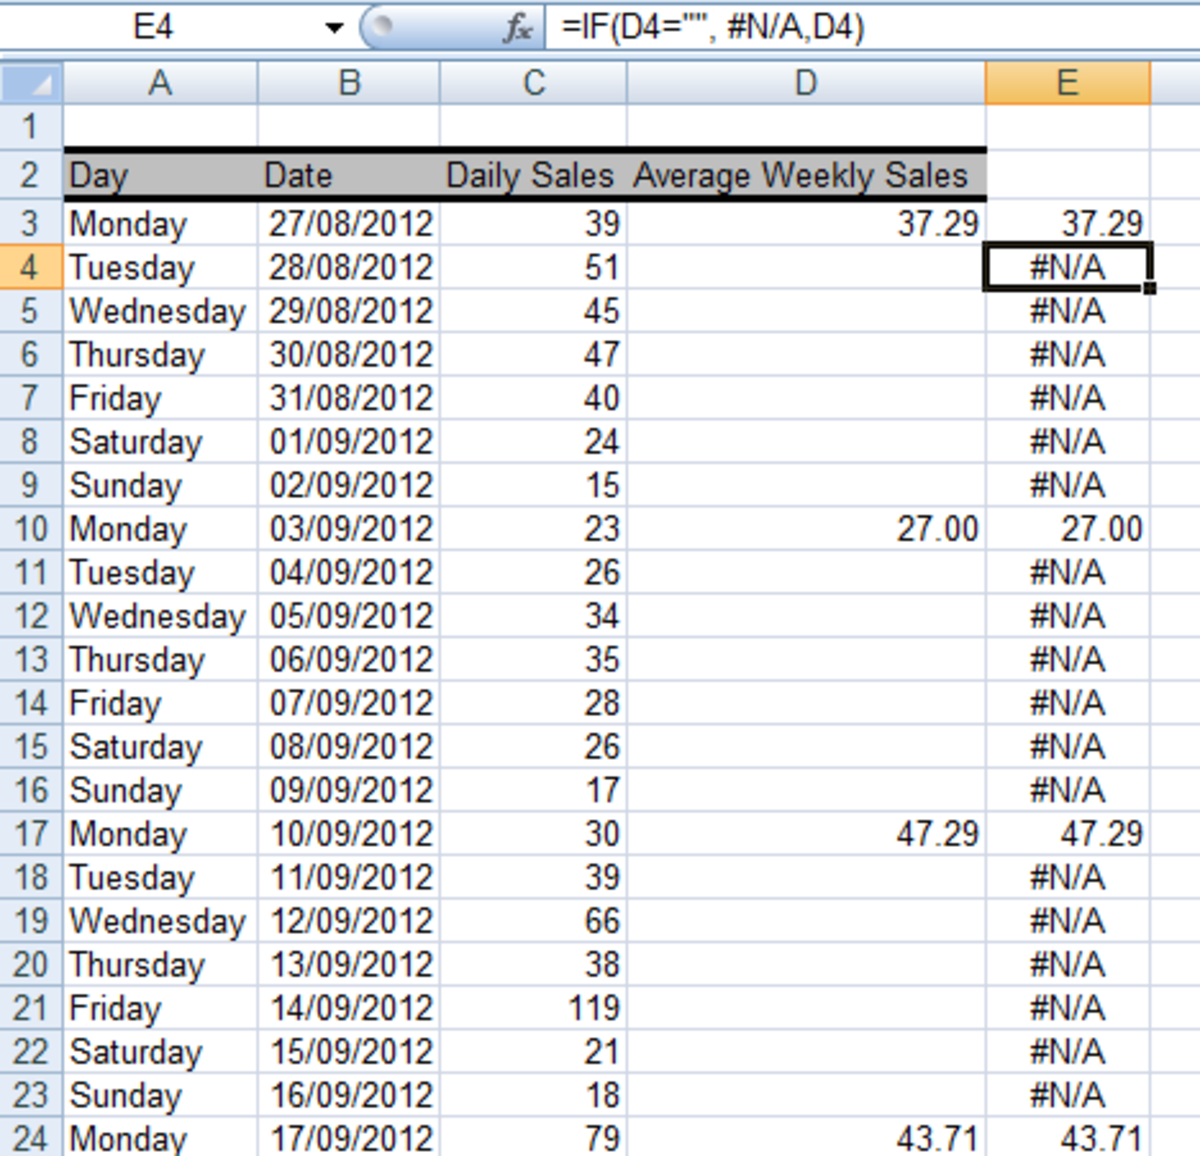 Ediblewildsus  Splendid How To Get Excel  And  To Ignore Empty Cells In A Chart Or  With Exciting Using The If Function In A Formula To Convert Empty Cells To Na With Cute How To Create Pivot Tables In Excel  Also Matrix Excel Template In Addition Calculate Age From Date Of Birth Excel And How To Randomize List In Excel As Well As Microsoft Excel  Additionally Excel Step Chart From Turbofuturecom With Ediblewildsus  Exciting How To Get Excel  And  To Ignore Empty Cells In A Chart Or  With Cute Using The If Function In A Formula To Convert Empty Cells To Na And Splendid How To Create Pivot Tables In Excel  Also Matrix Excel Template In Addition Calculate Age From Date Of Birth Excel From Turbofuturecom